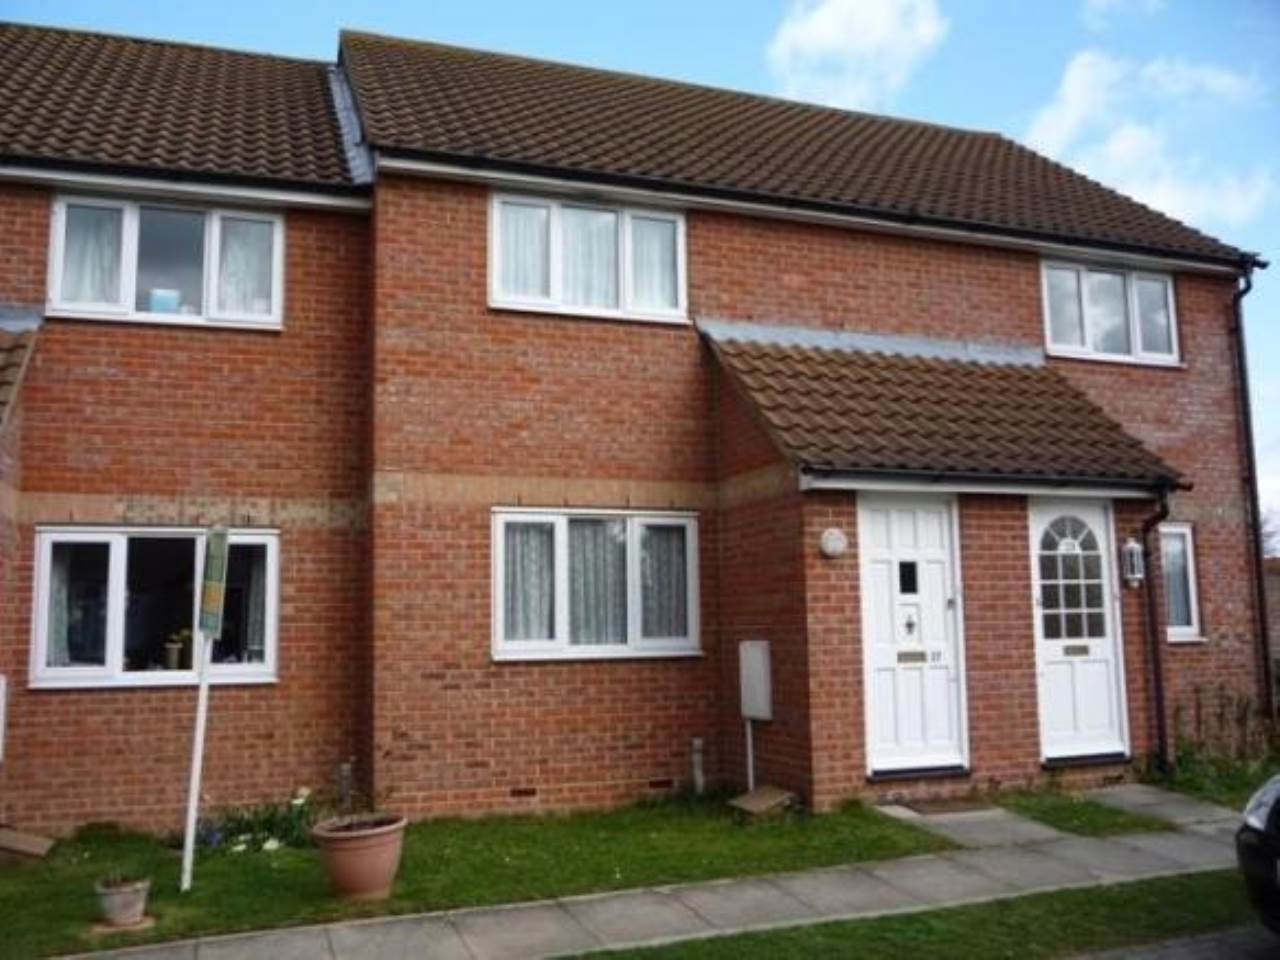 2 bed house to rent in Sudbury  - Property Image 1